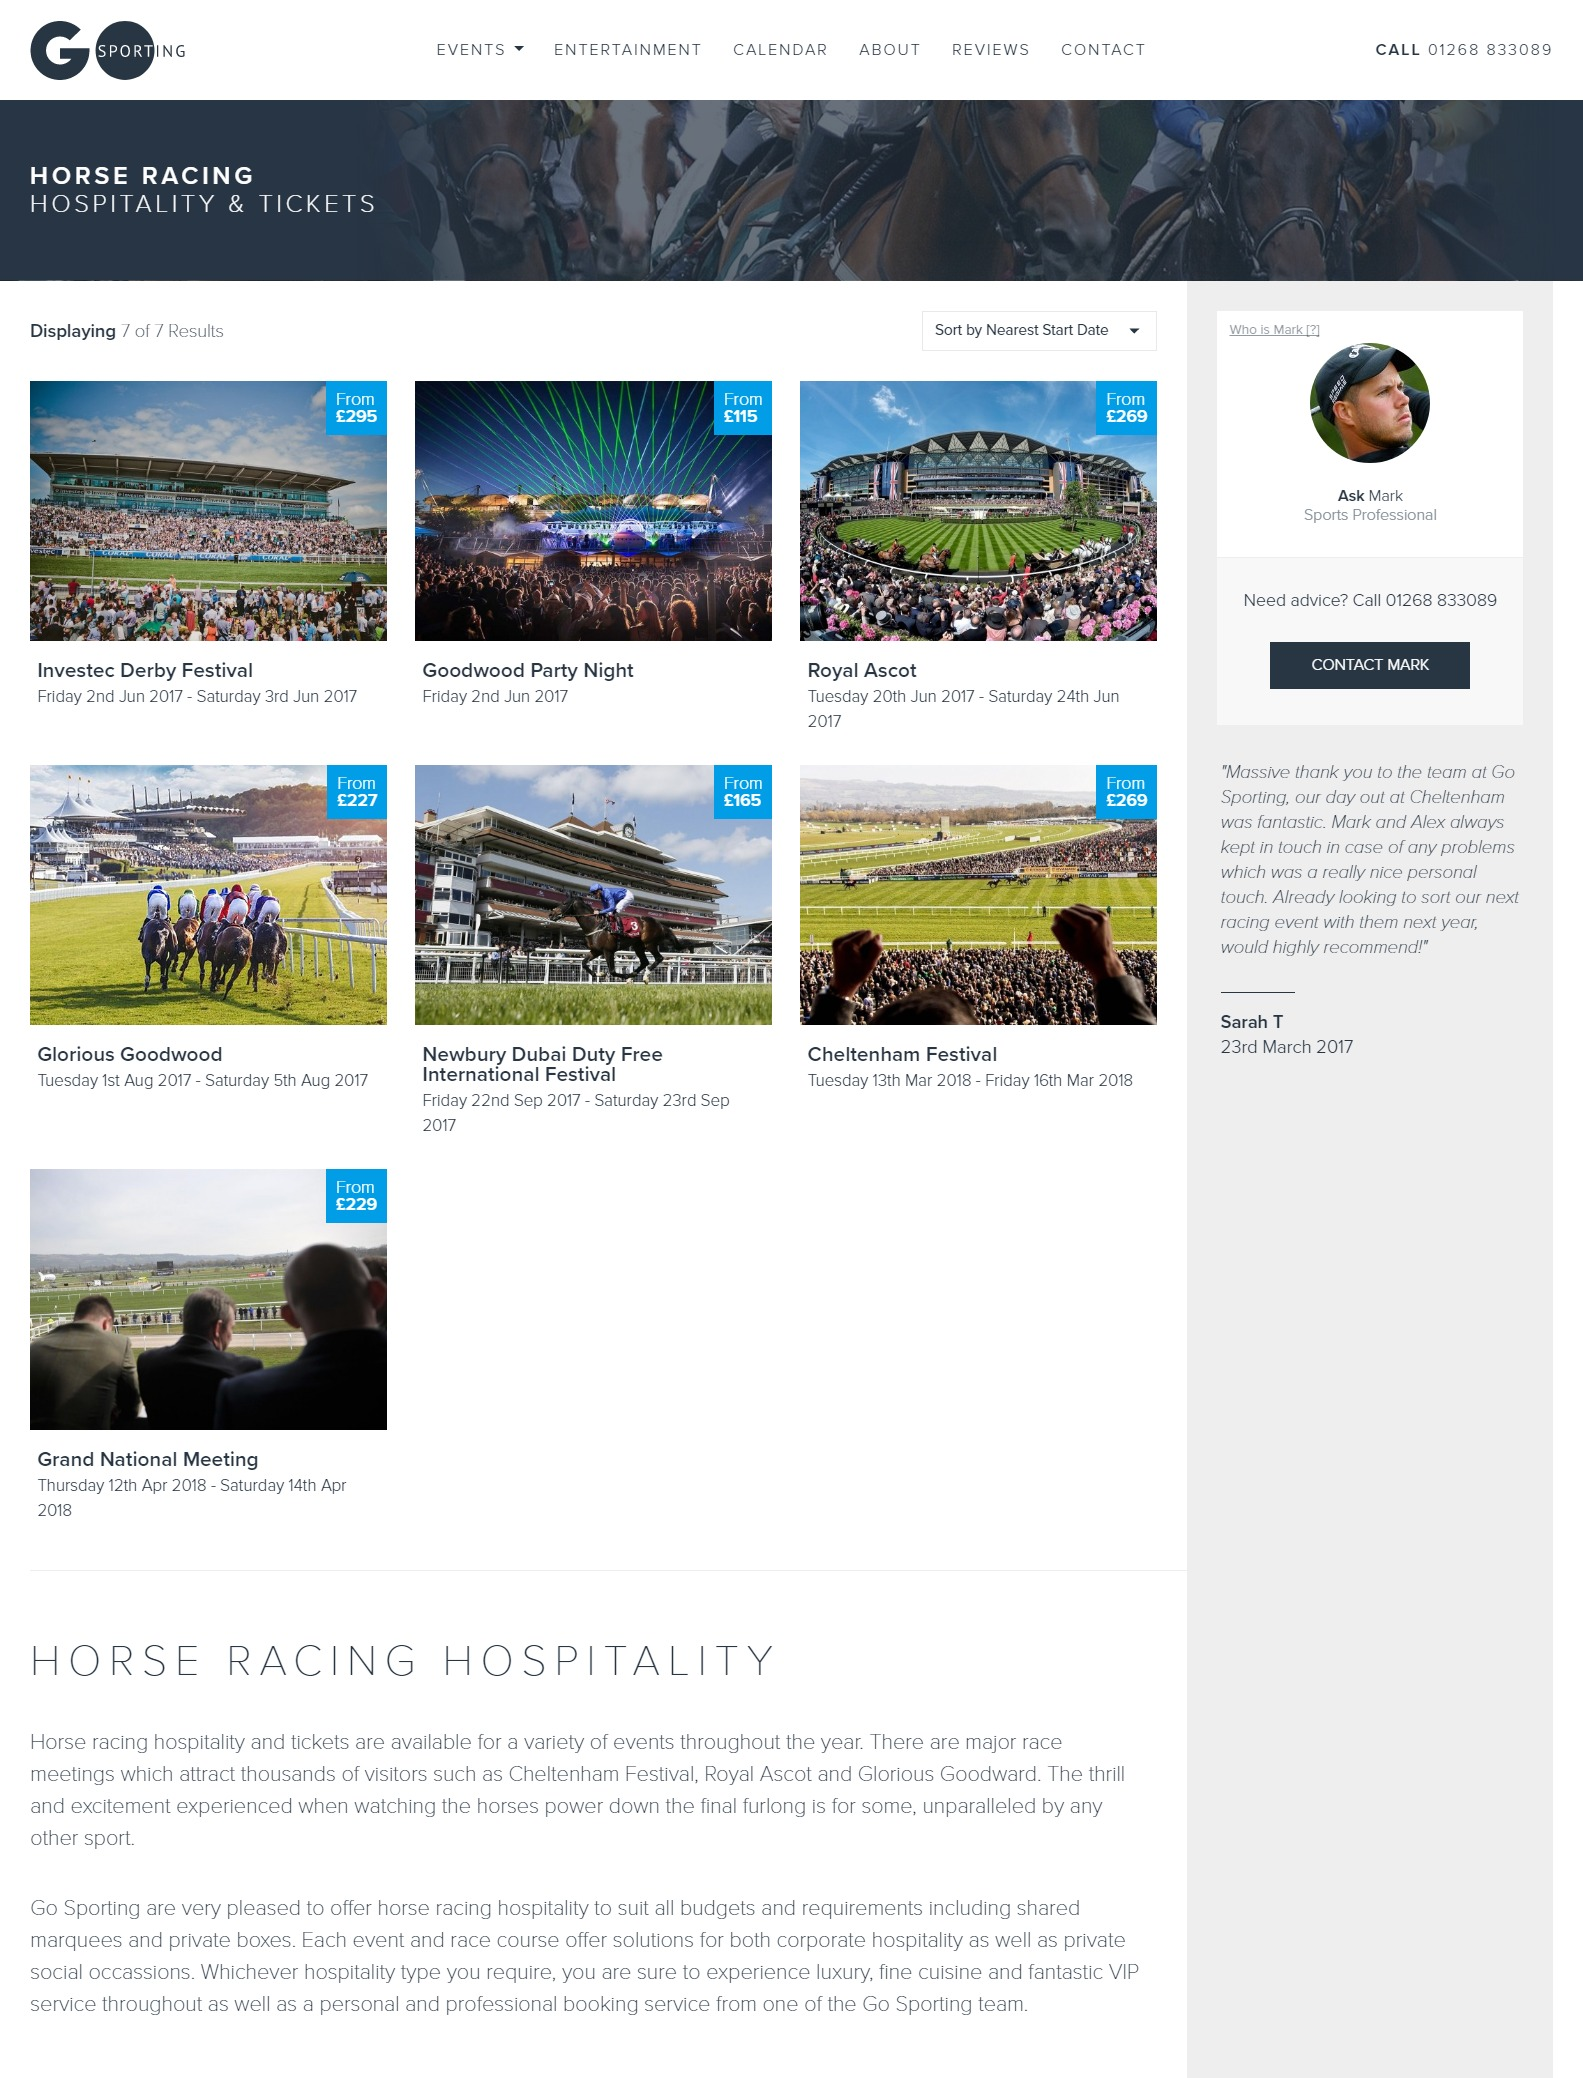 Go Sporting Event Category Page